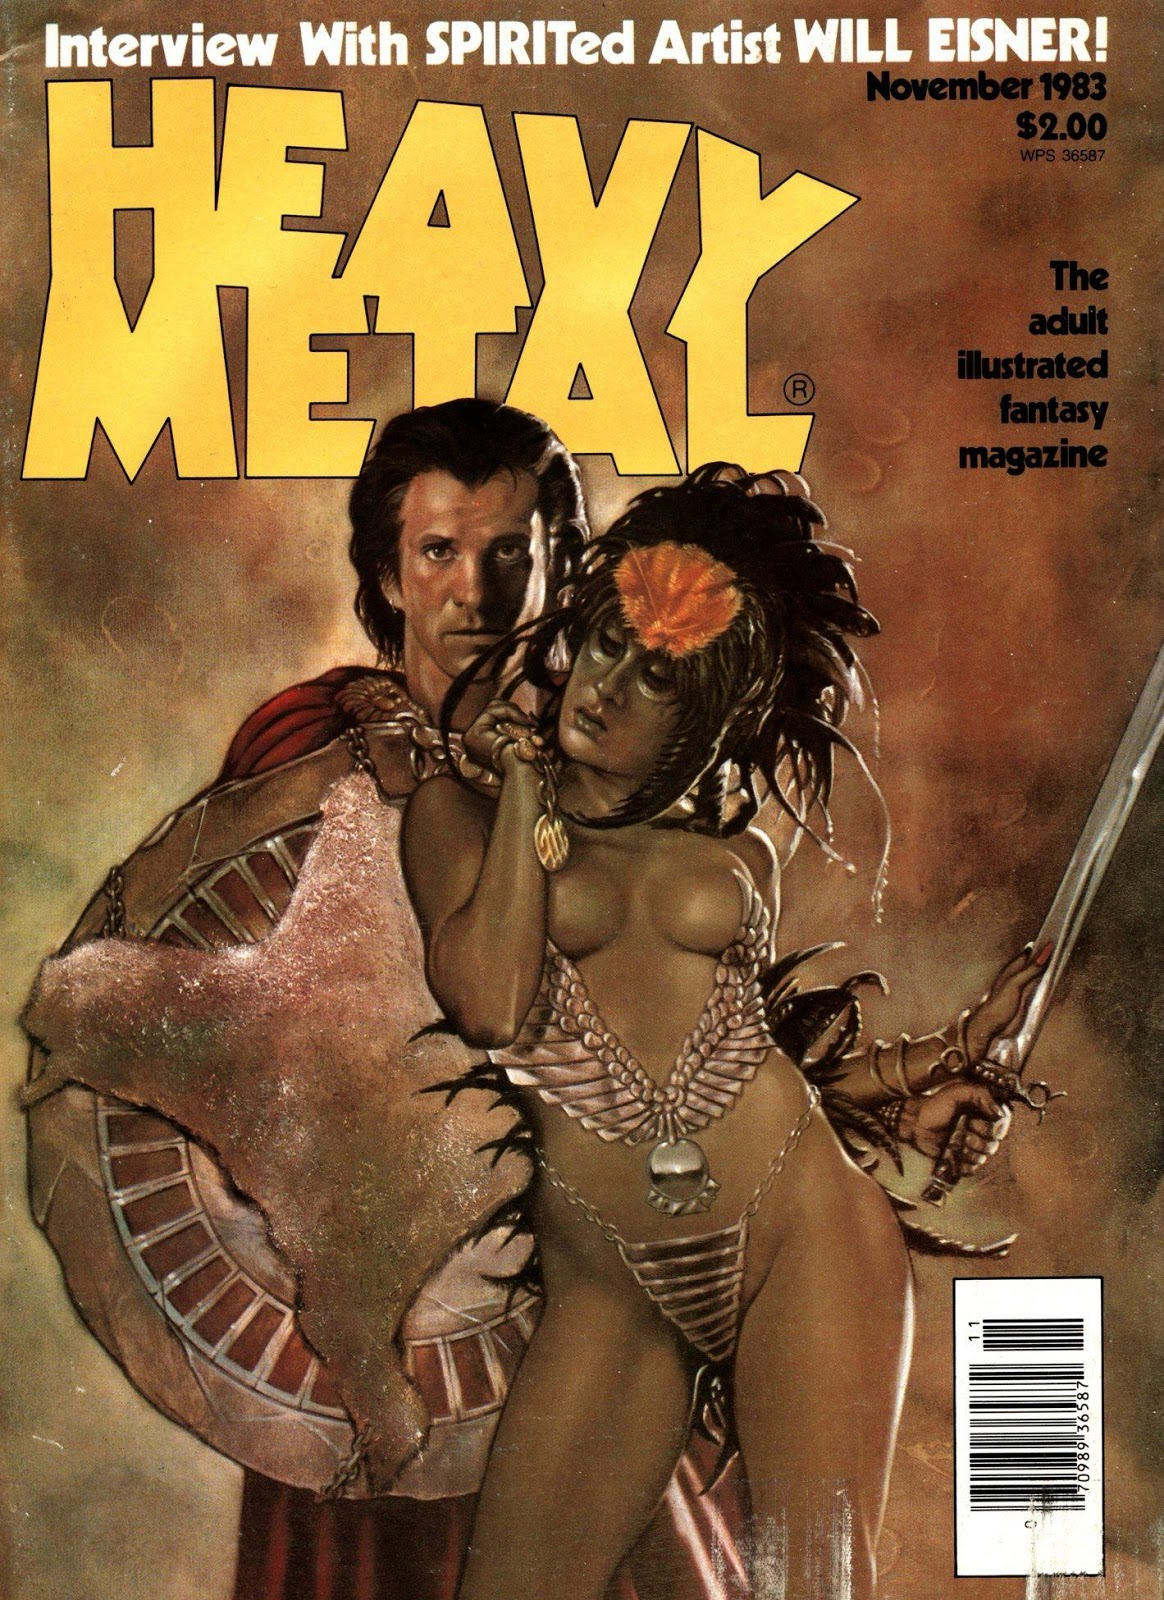 Images: A Fantastic Collection Of Stunning Sci-Fi And Fantasy Based Heavy Metal Comic Book Covers From 1982-1983